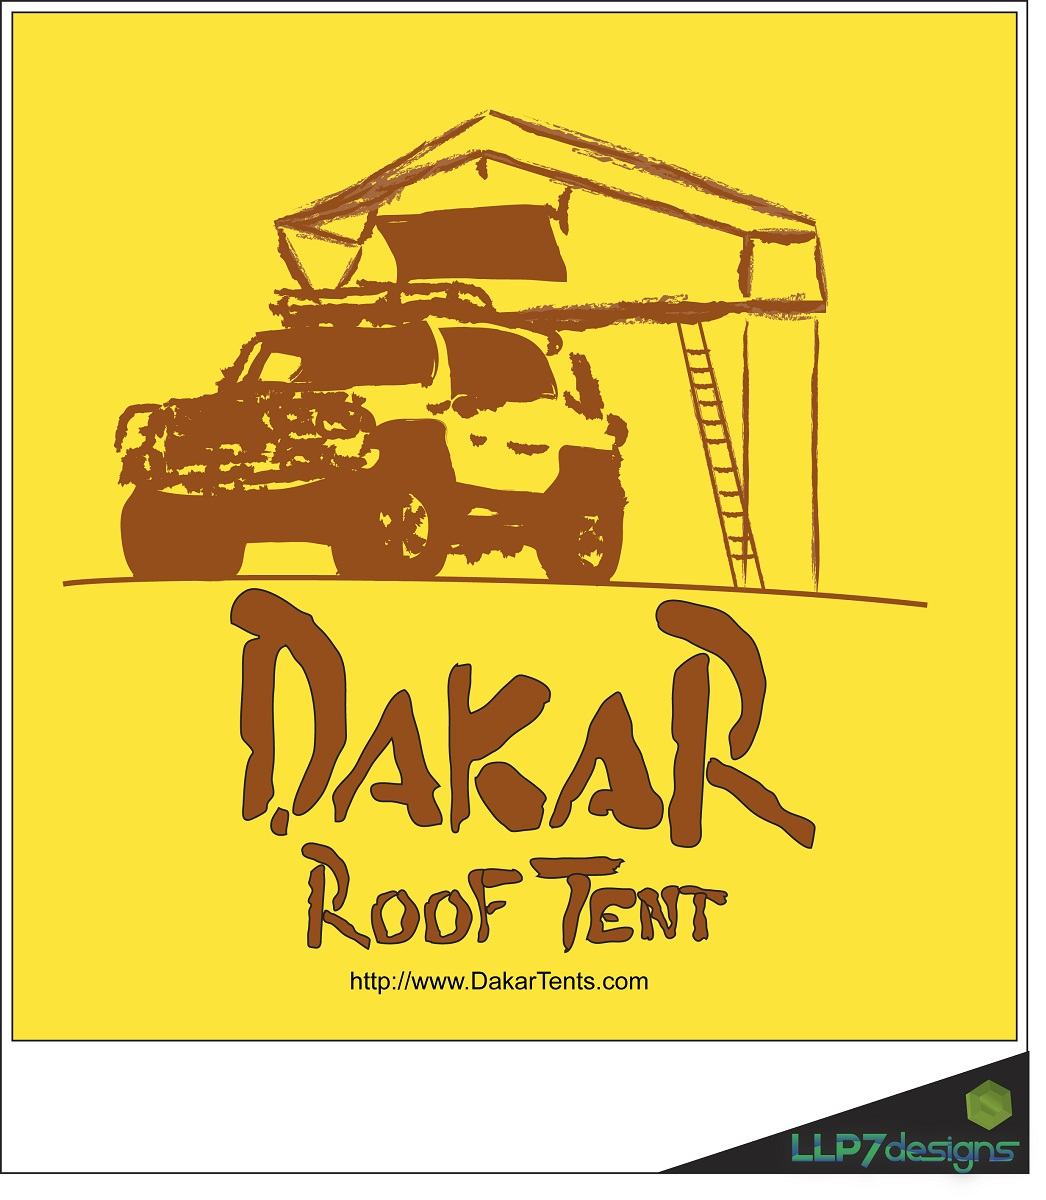 Logo Design by LLP7 - Entry No. 34 in the Logo Design Contest Dakar Roof Tents.